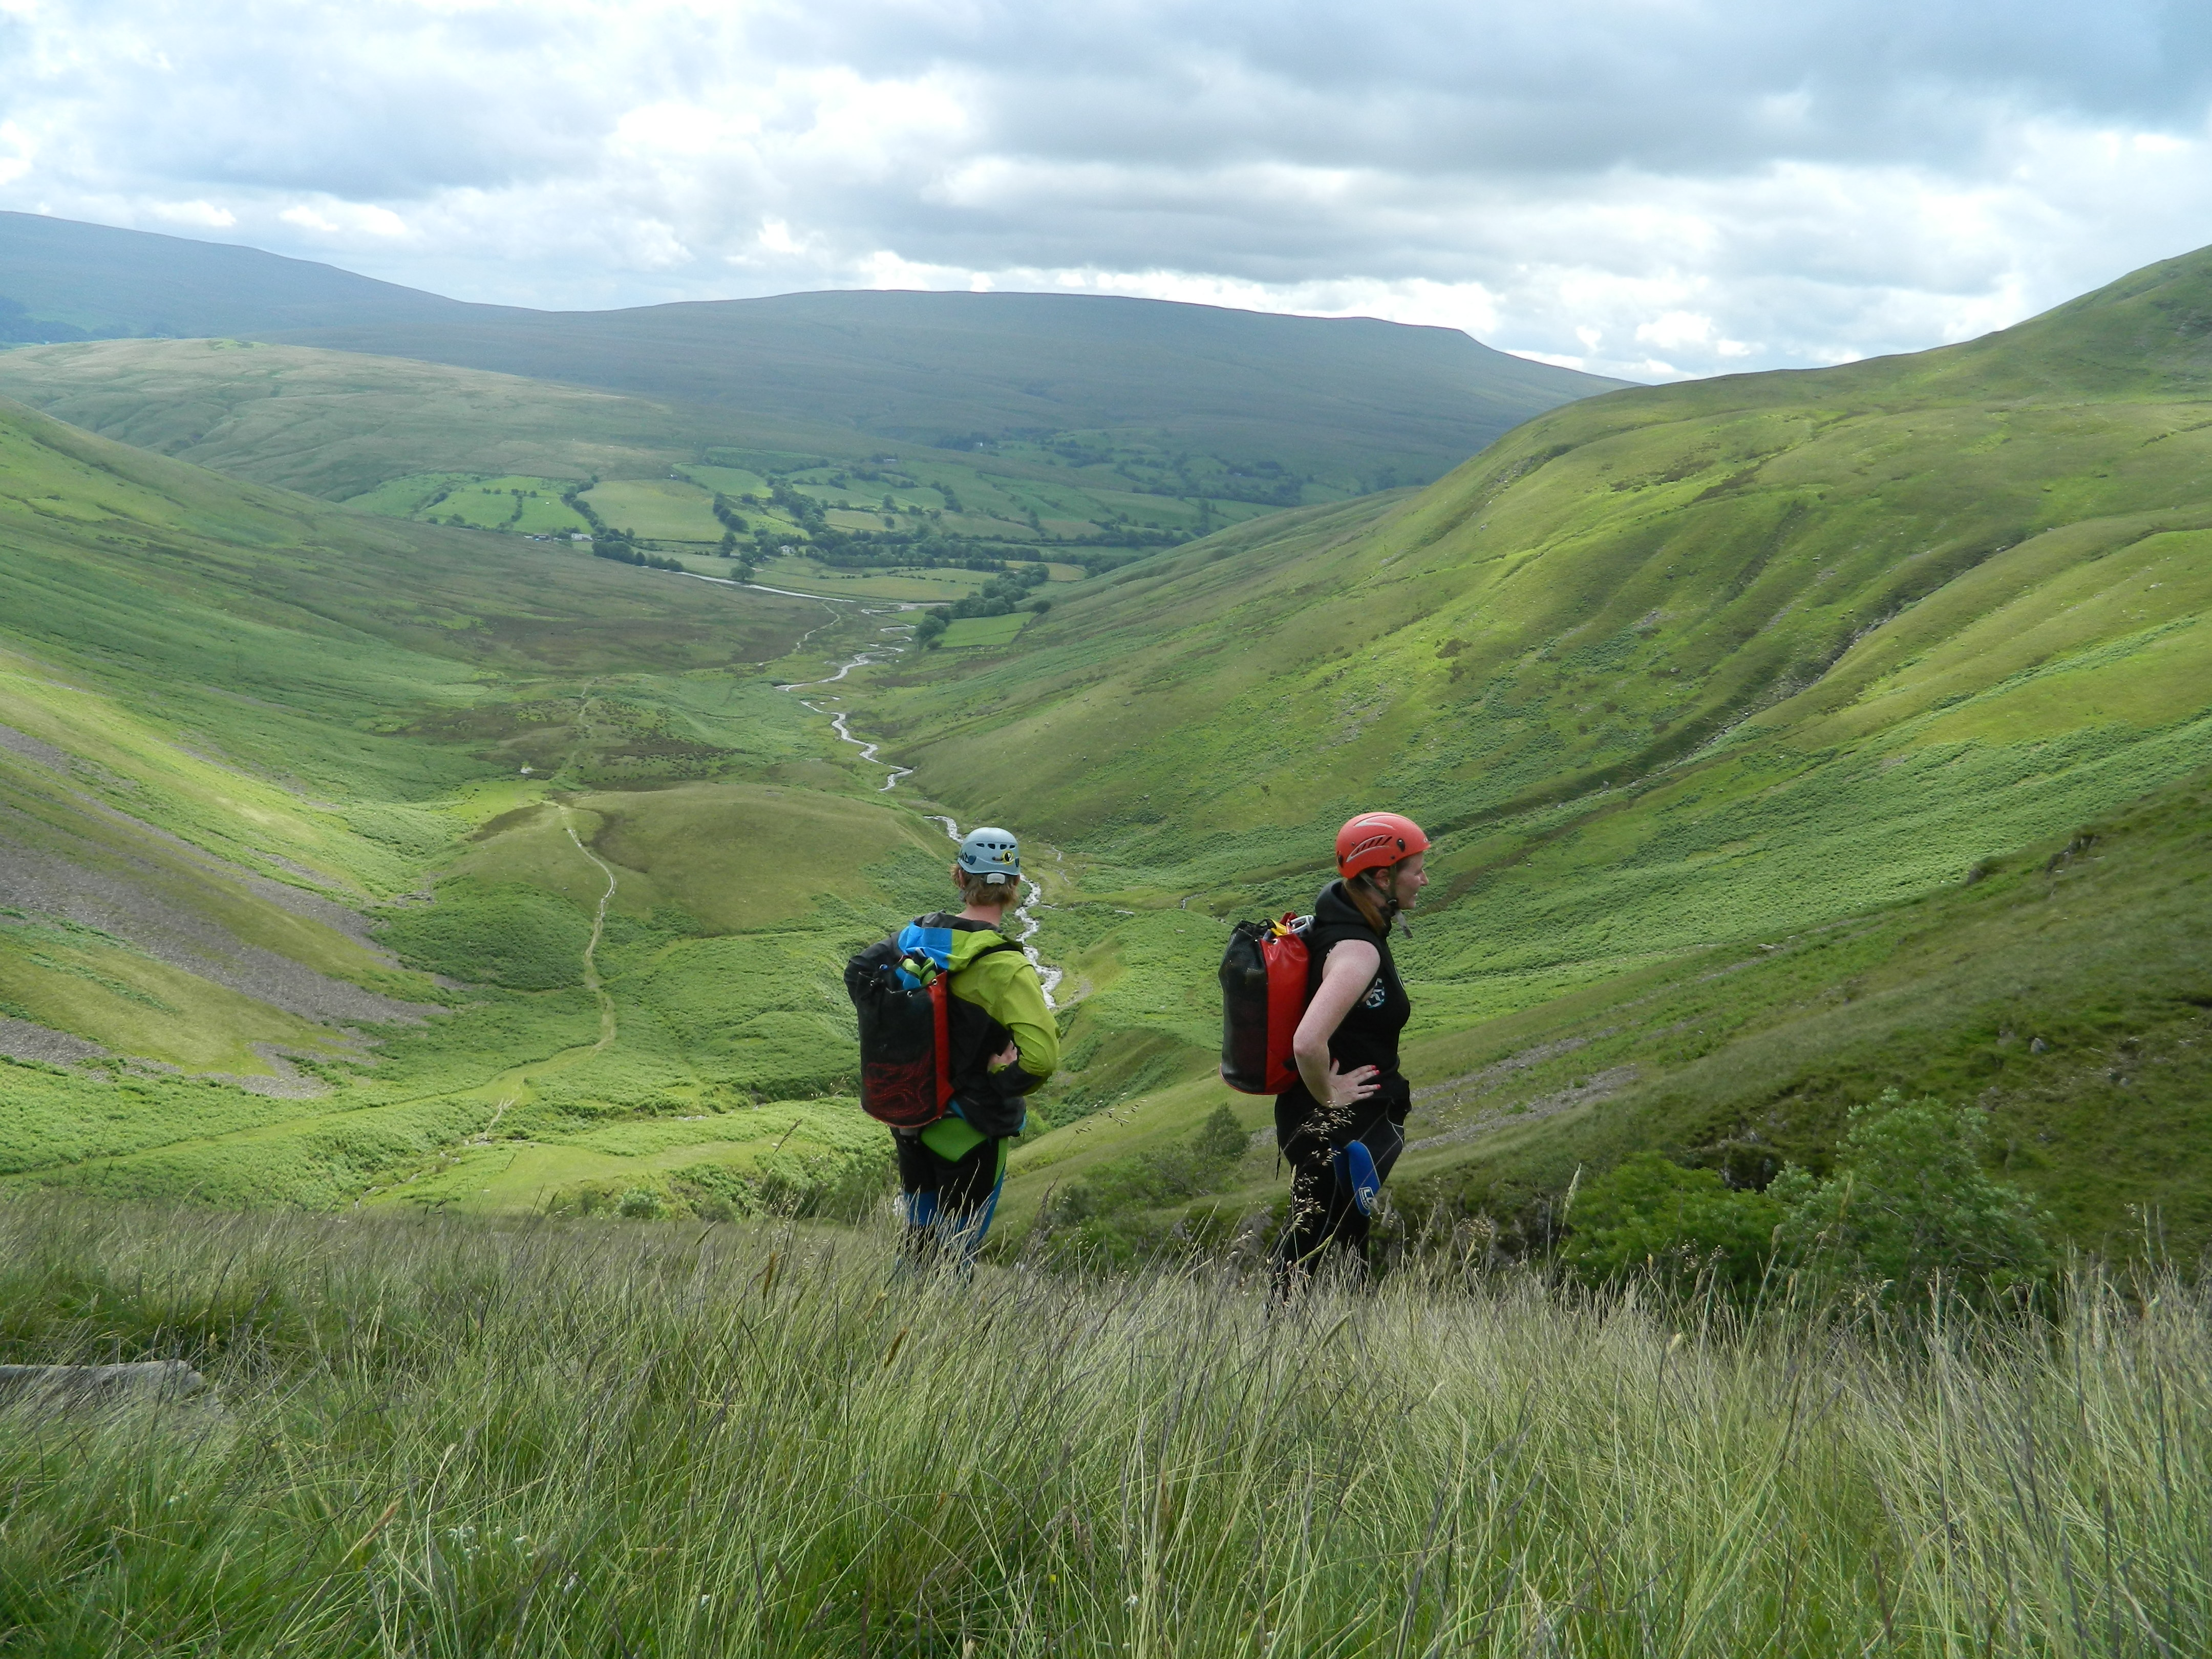 canyoning - people walking to top of Cautley Spout with How Stean Gorge Outdoor Team, Yorkshire Dales